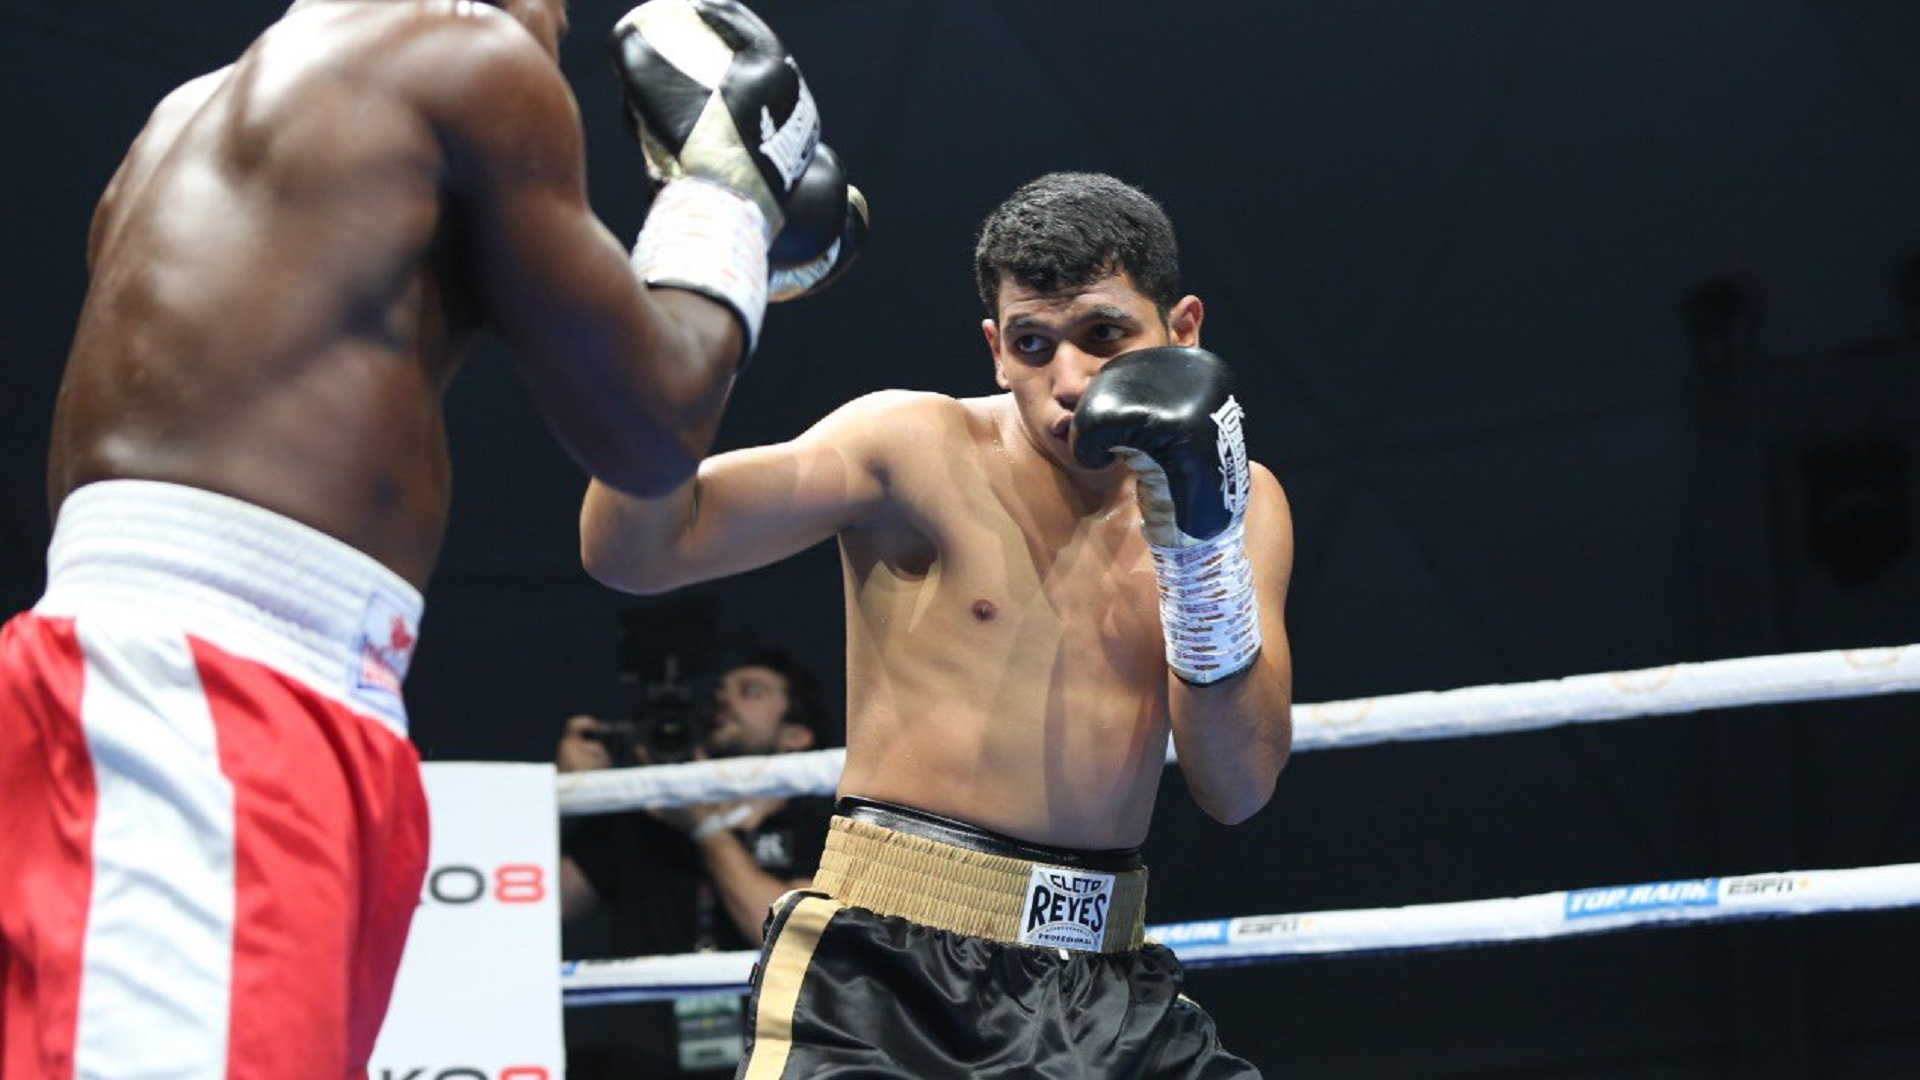 https://lockerroom.in/blog/view/Indian-Boxer-Faizan-Anwar-Interview-LockerRoom